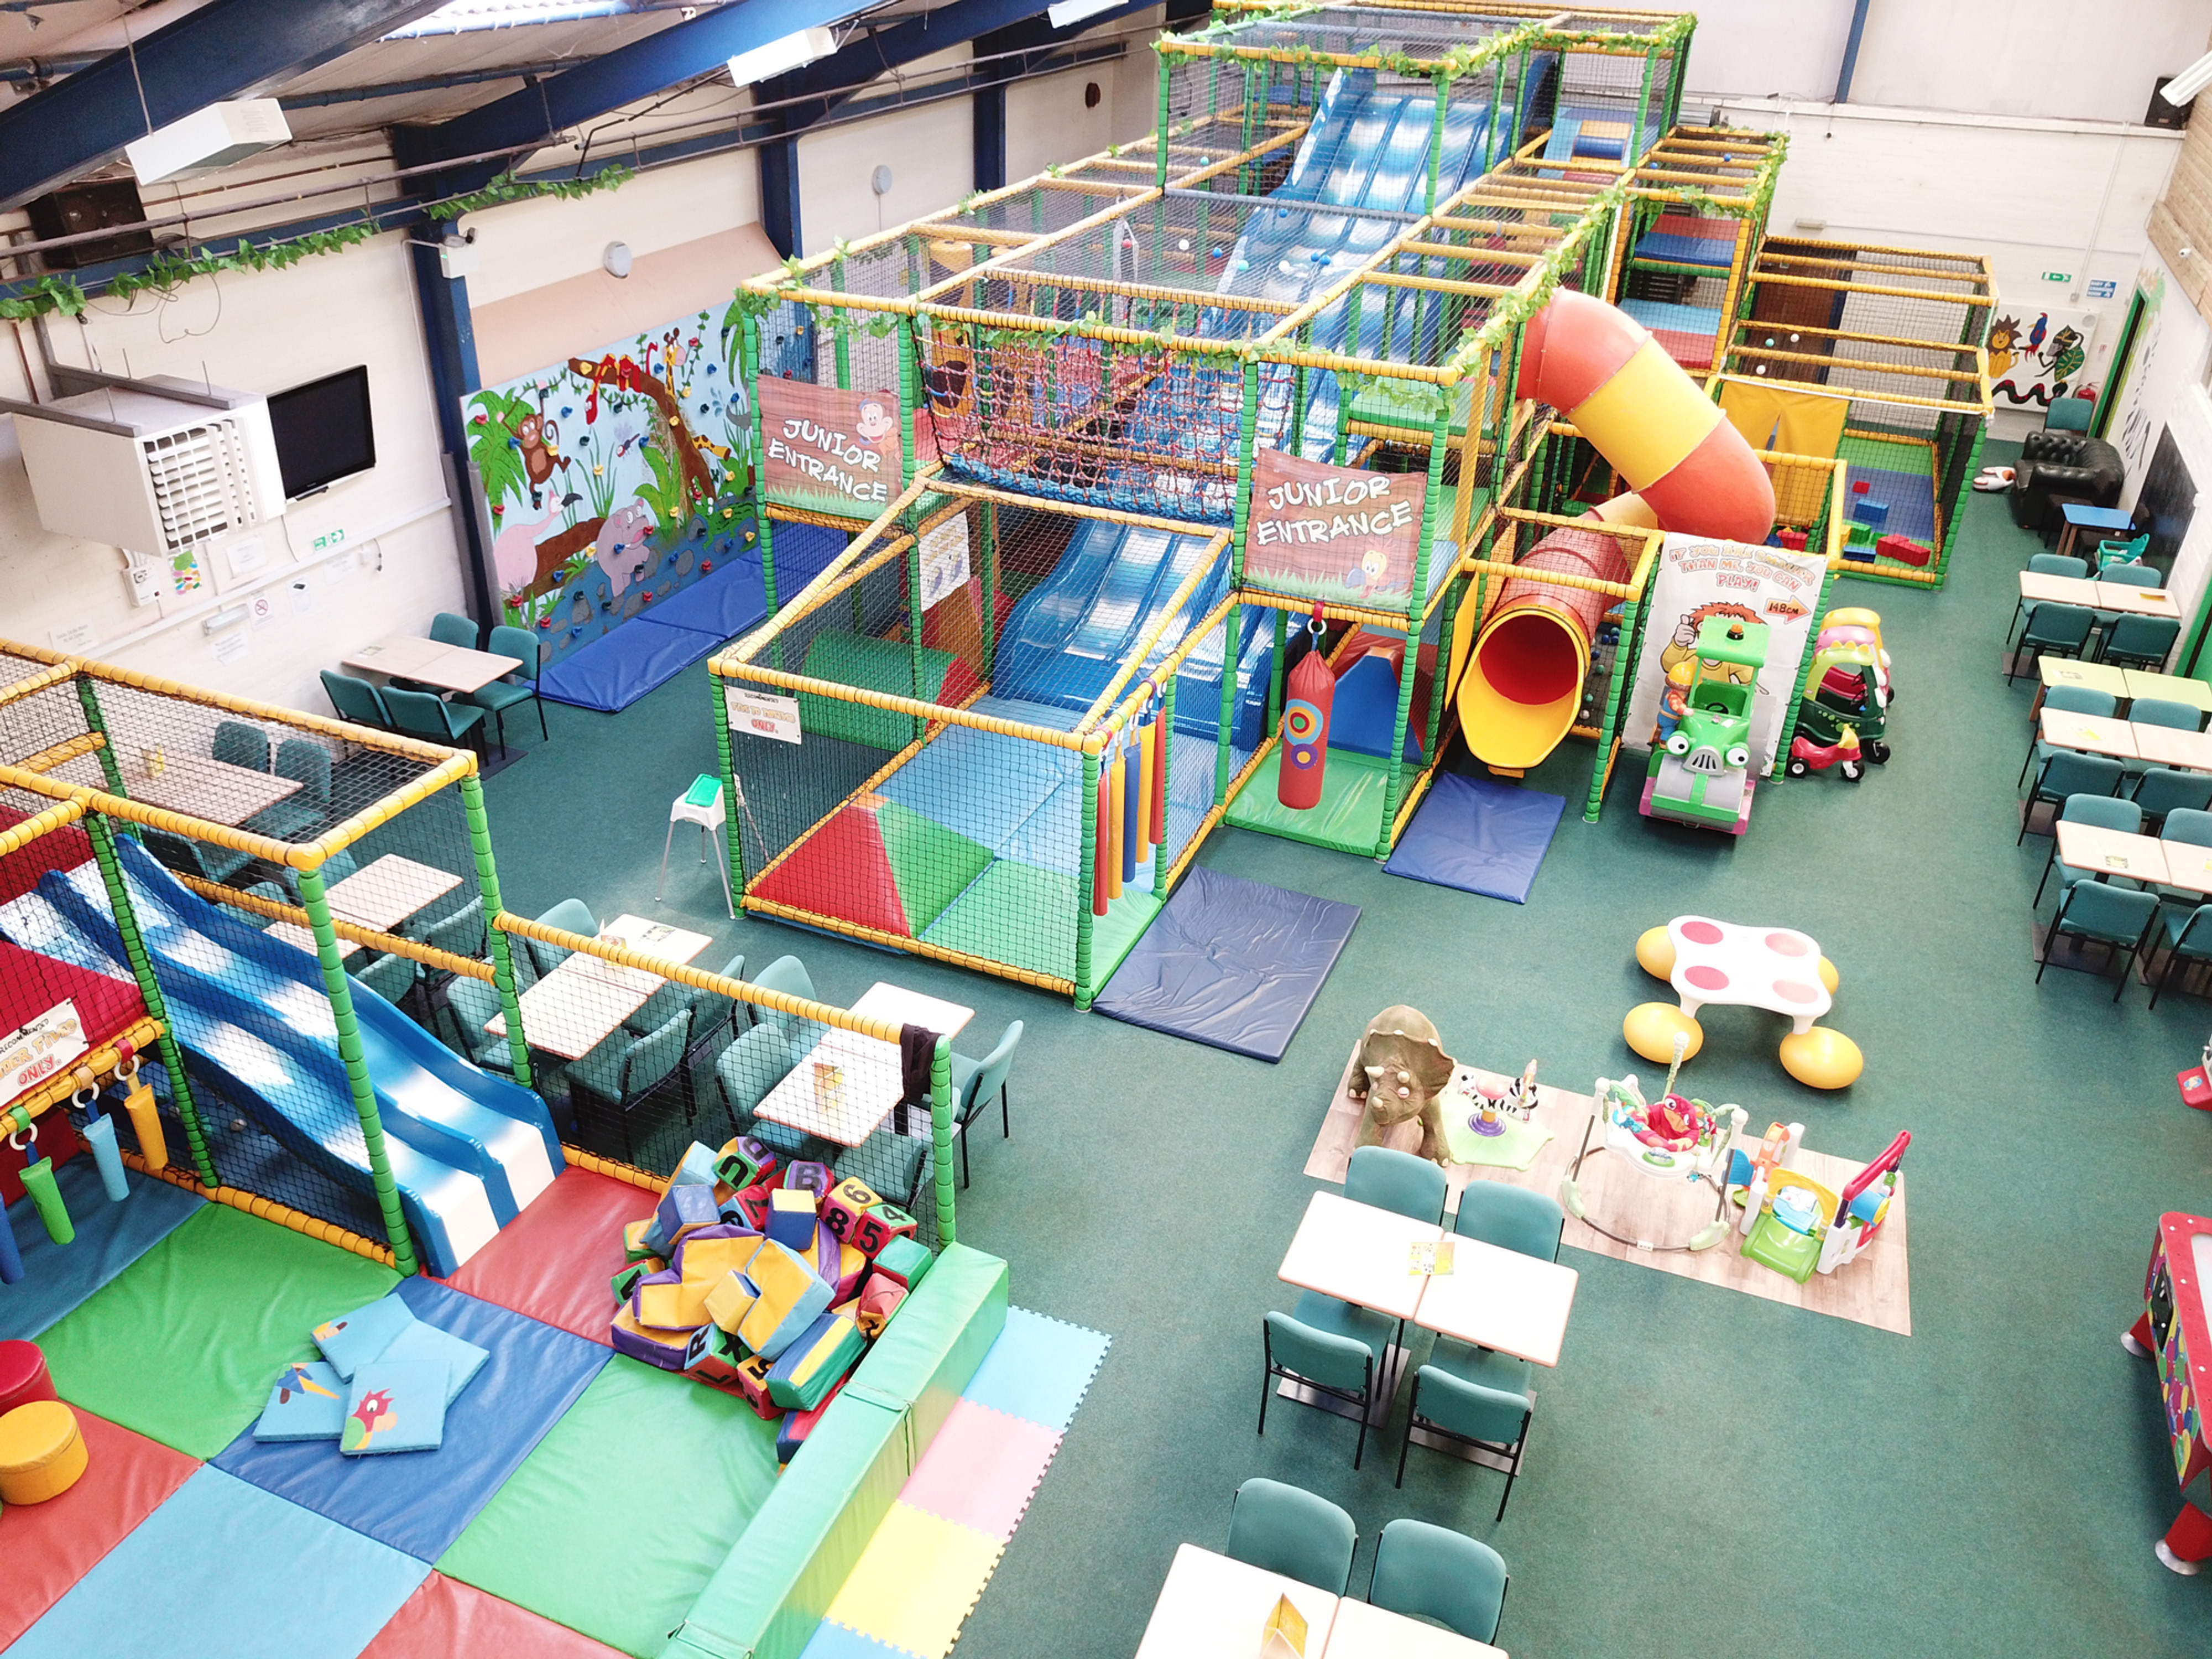 Soft play session (2hrs)